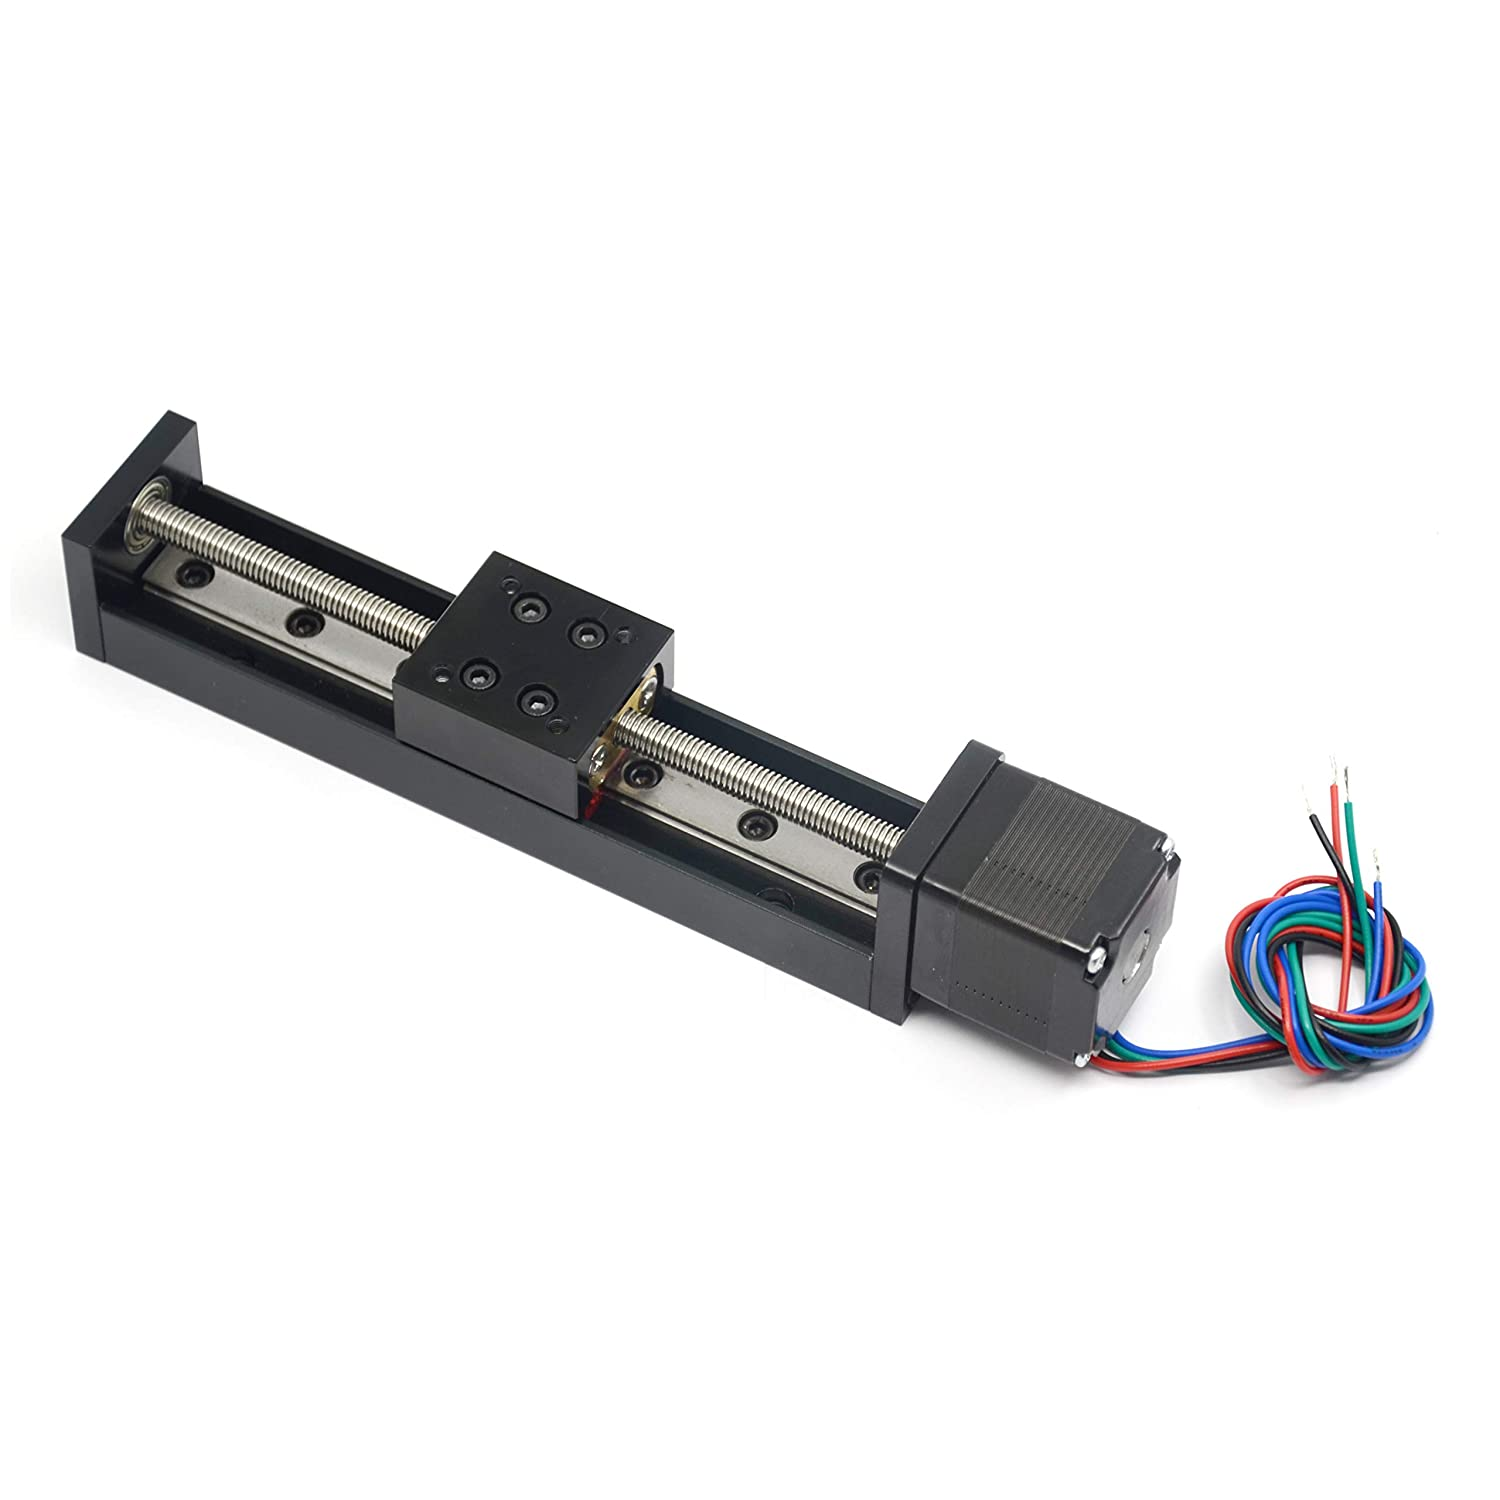 Befenybay 100mm Effective Travel Length Mini Linear Rail Guide Lead Screw T6x1 with NEMA11 Stepper Motor for DIY CNC Router Parts X Y Z Linear Stage Actuator